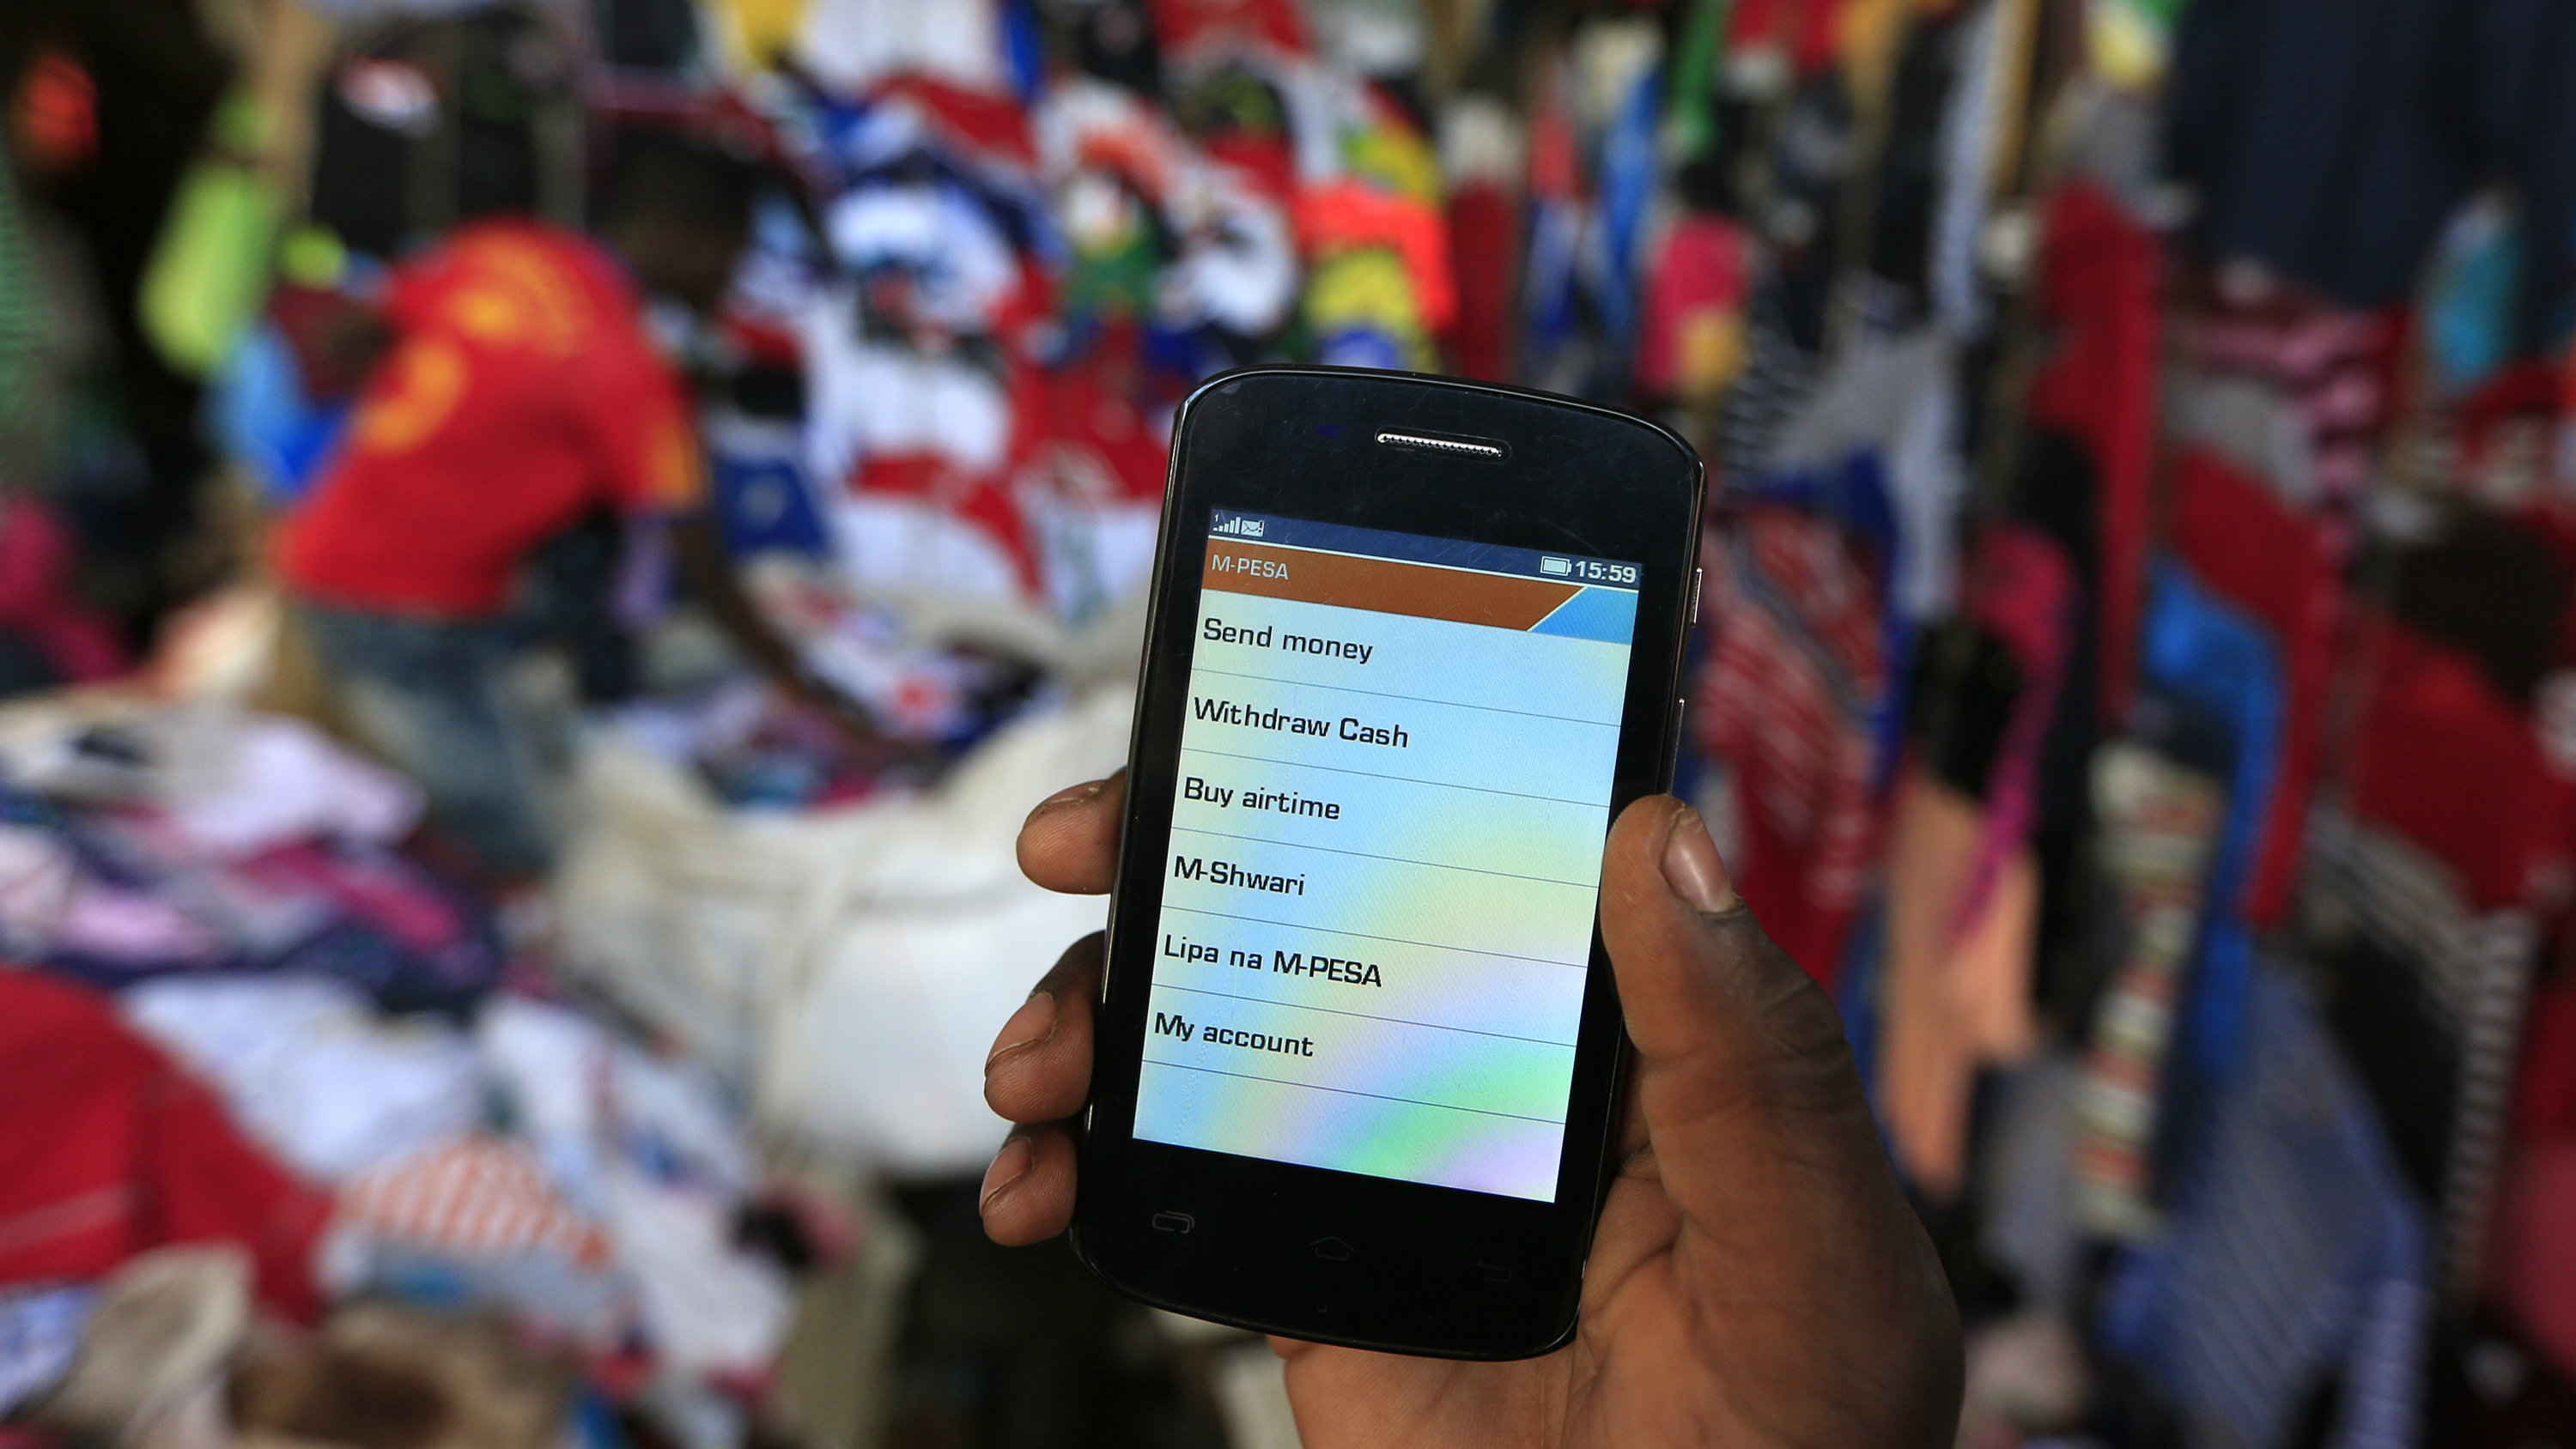 A man holds up his mobile phone showing a M-Pesa mobile money transaction page for the photographer at an open air market in Kibera in Kenya's capital Nairobi.